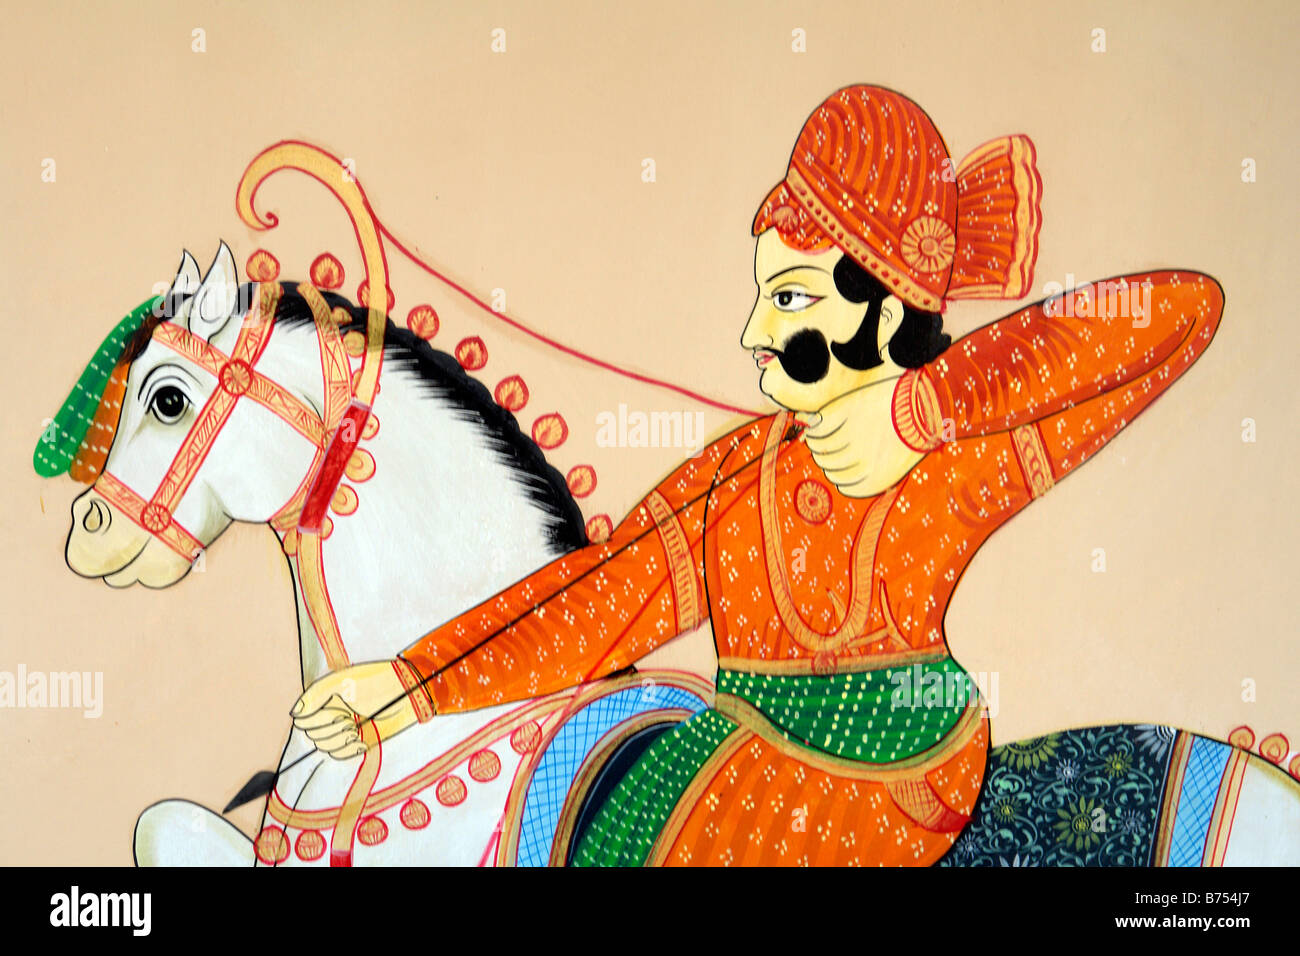 Traditional Indian Man With Bow And Arrow Hunting Wall Painting Or Stock Photo Alamy